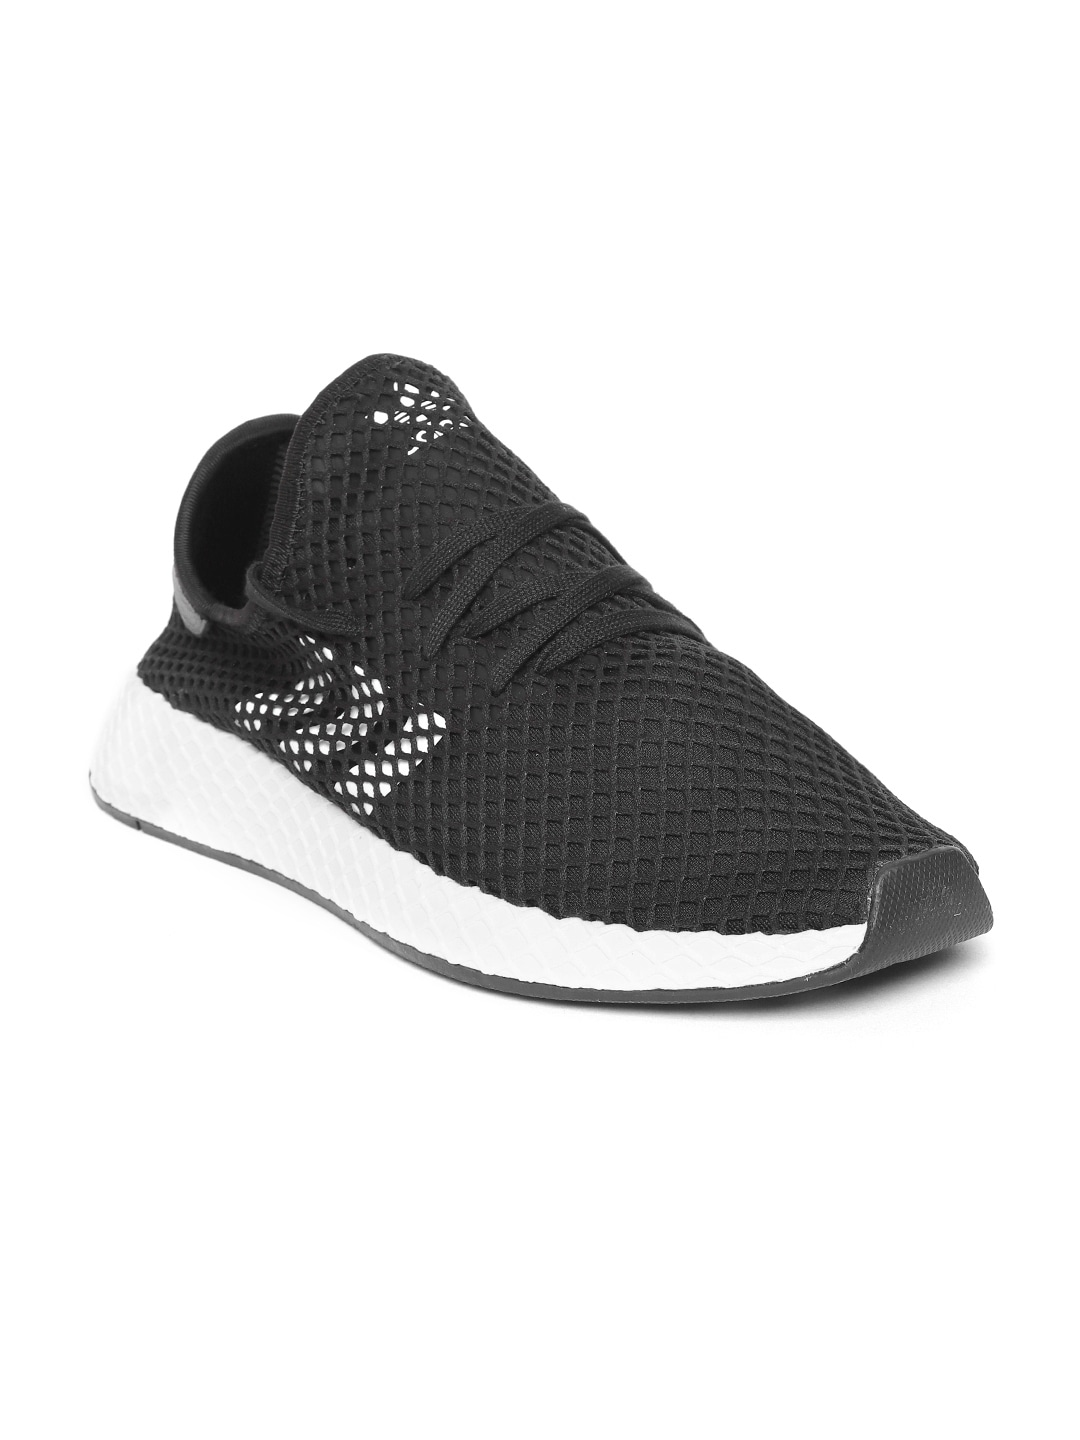 87adb712e337f Adidas Deerupt - Buy Adidas Deerupt online in India